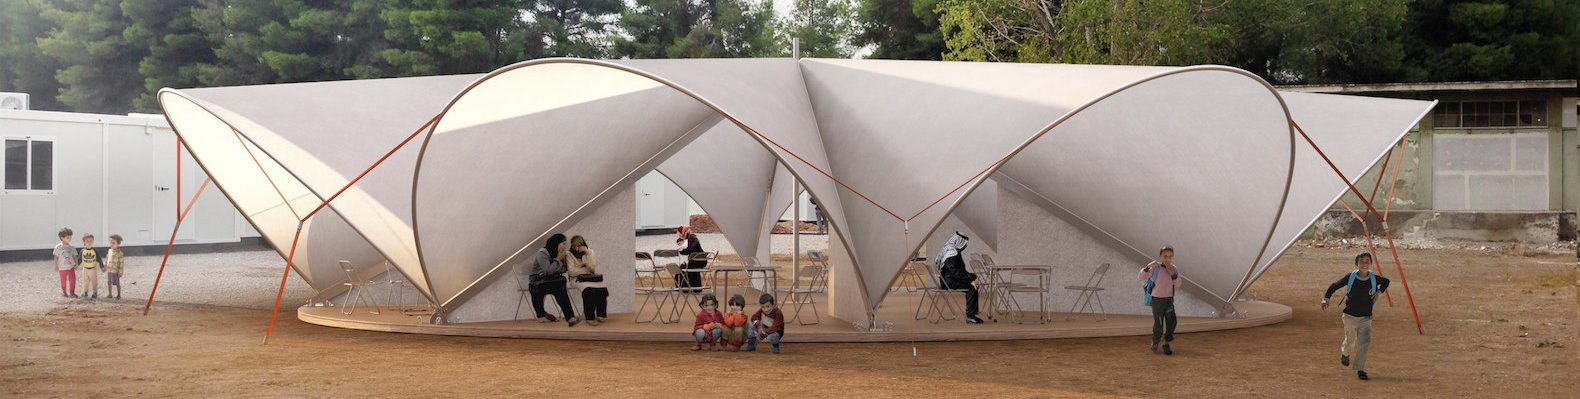 Maidan Tent aims to improve life in refugee c&s with pop-up public space | Inhabitat - Green Design Innovation Architecture Green Building & Maidan Tent aims to improve life in refugee camps with pop-up ...